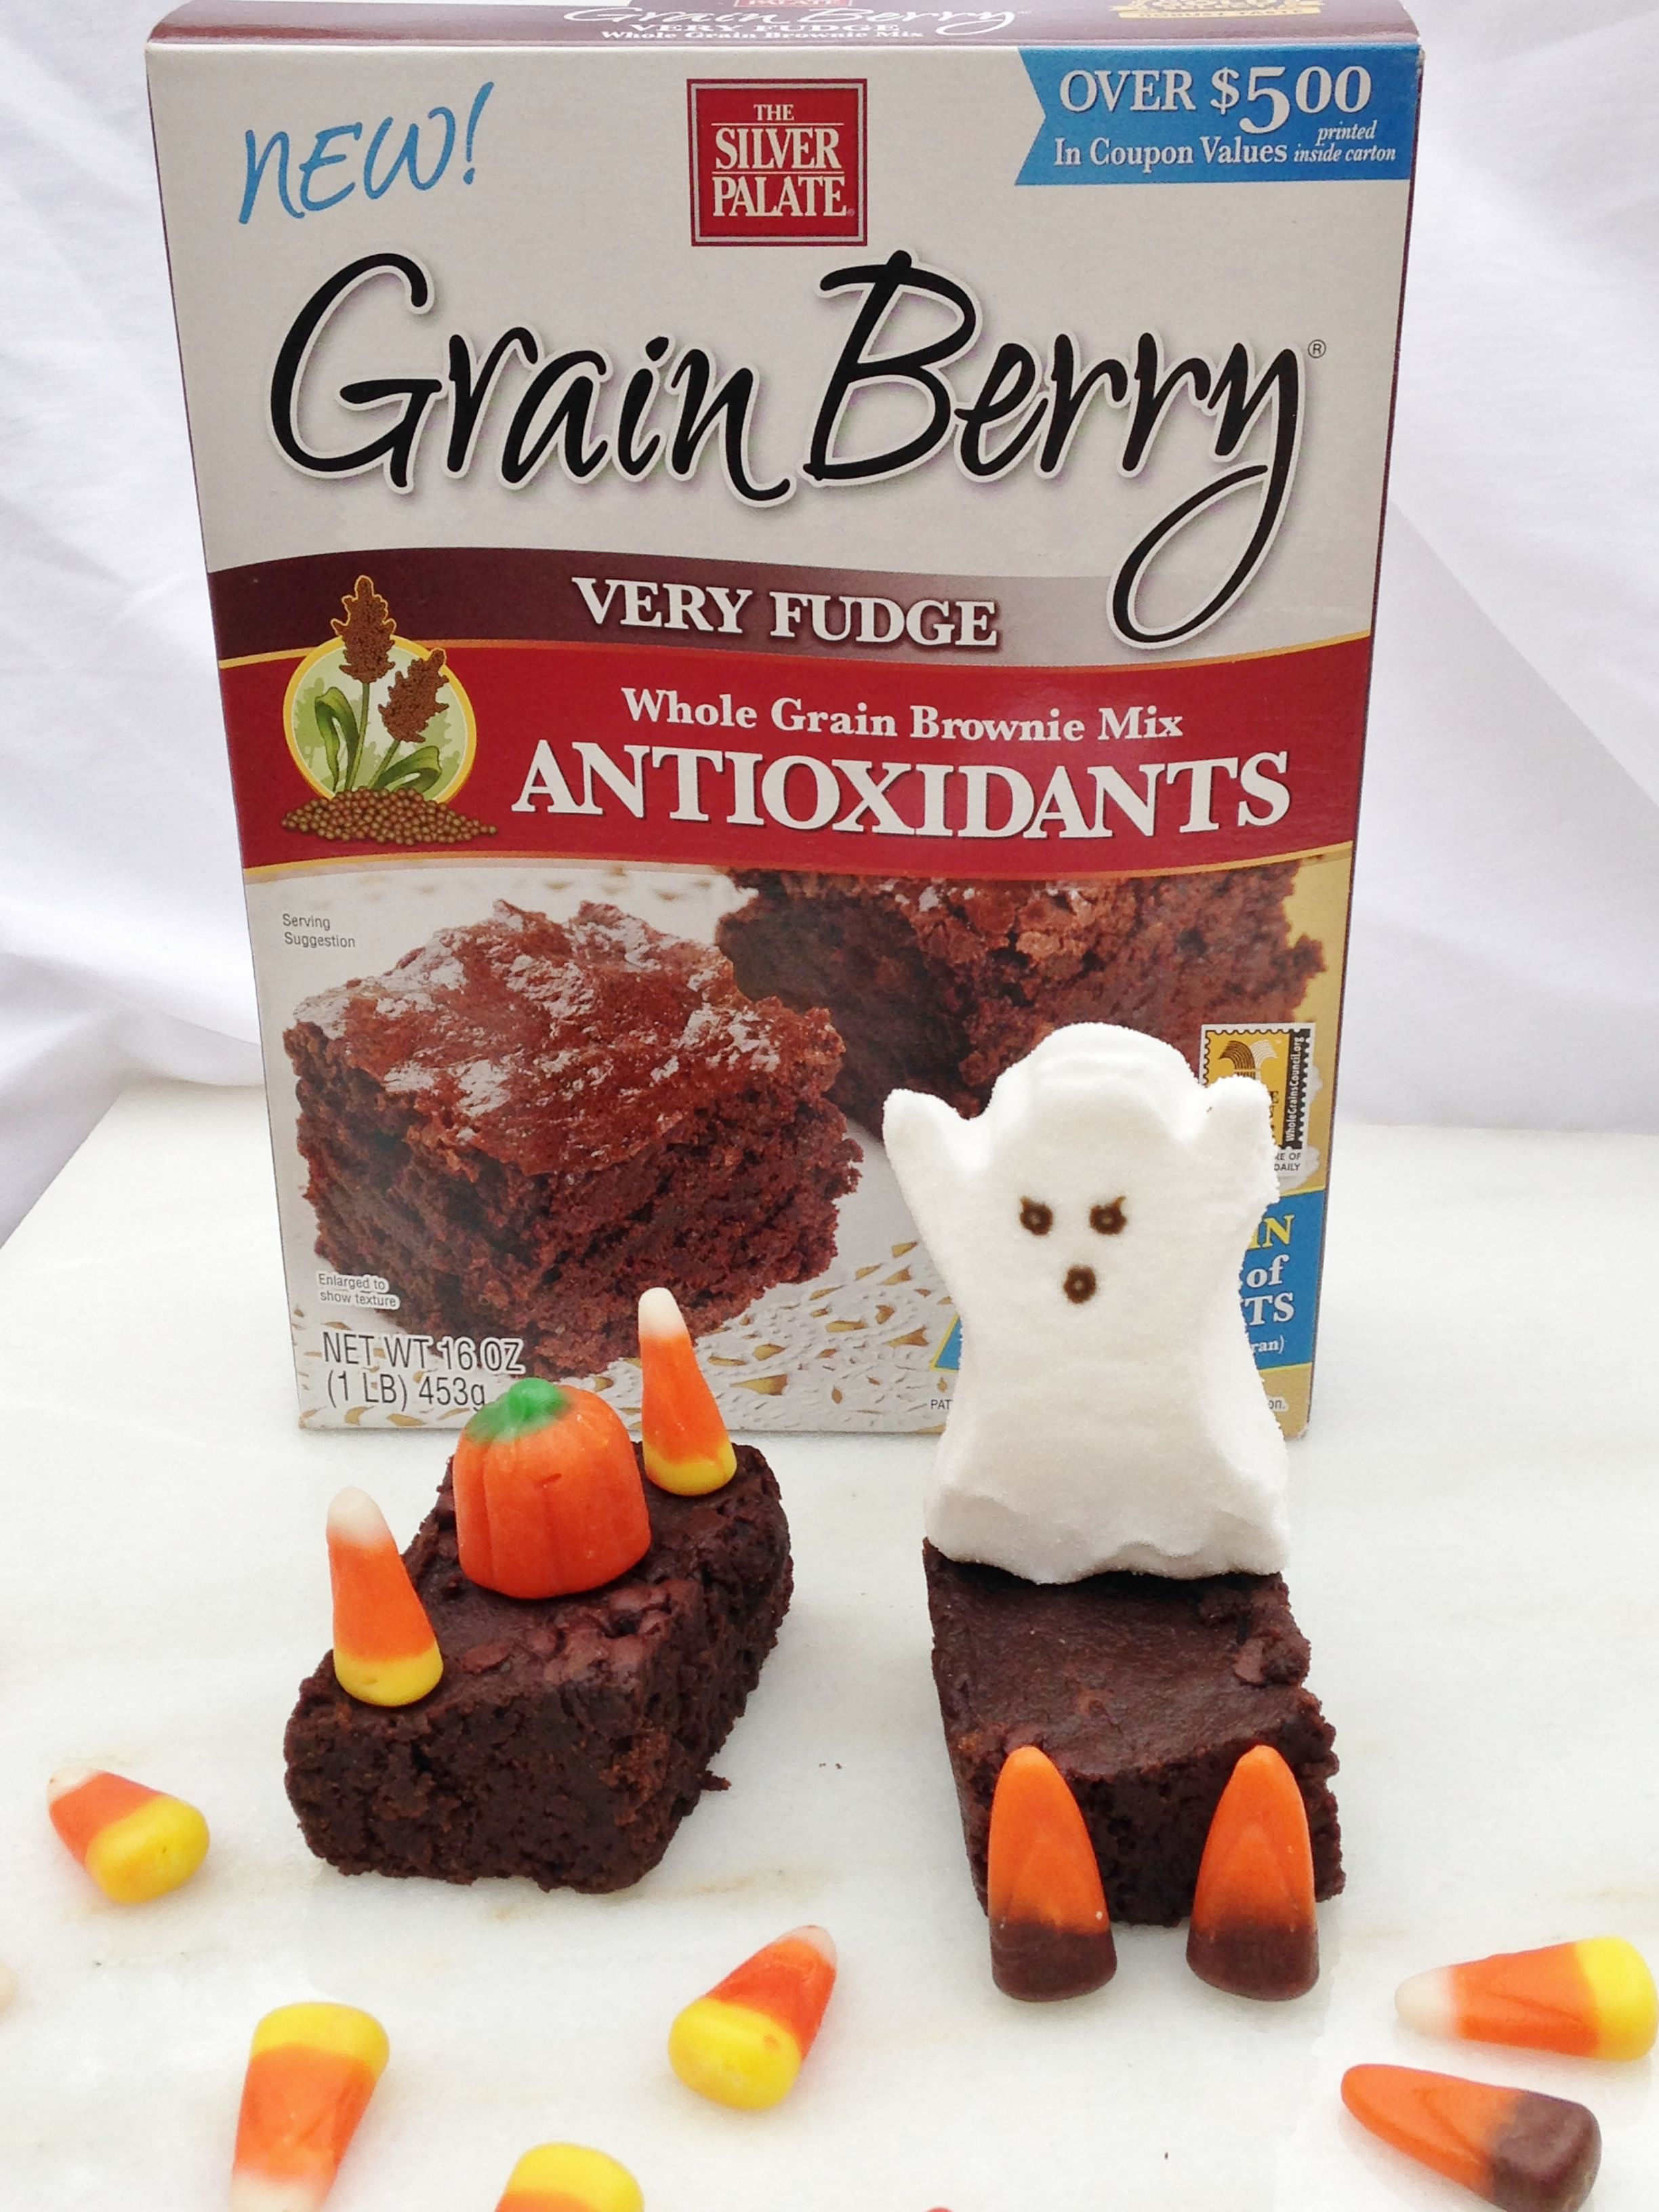 Spooky #GrainBerry #Halloween Whole Grain Antioxidant Brownies! #Delish!